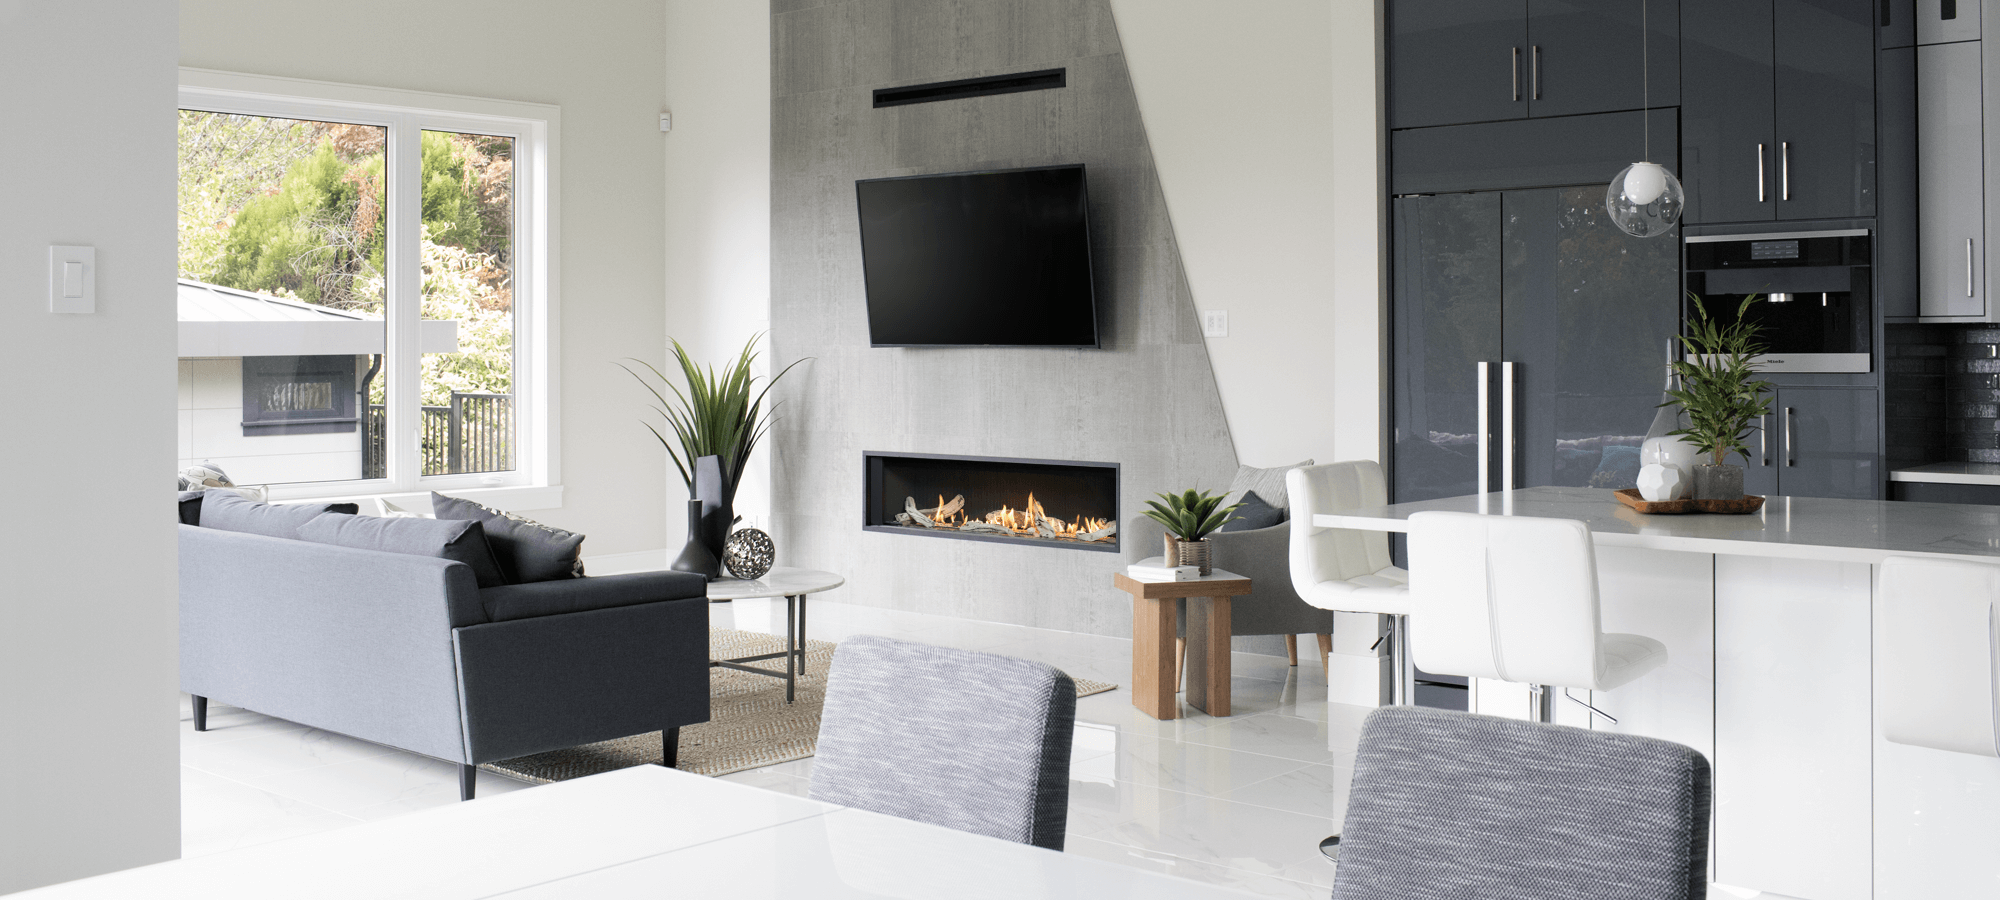 valor the original radiant gas fireplace